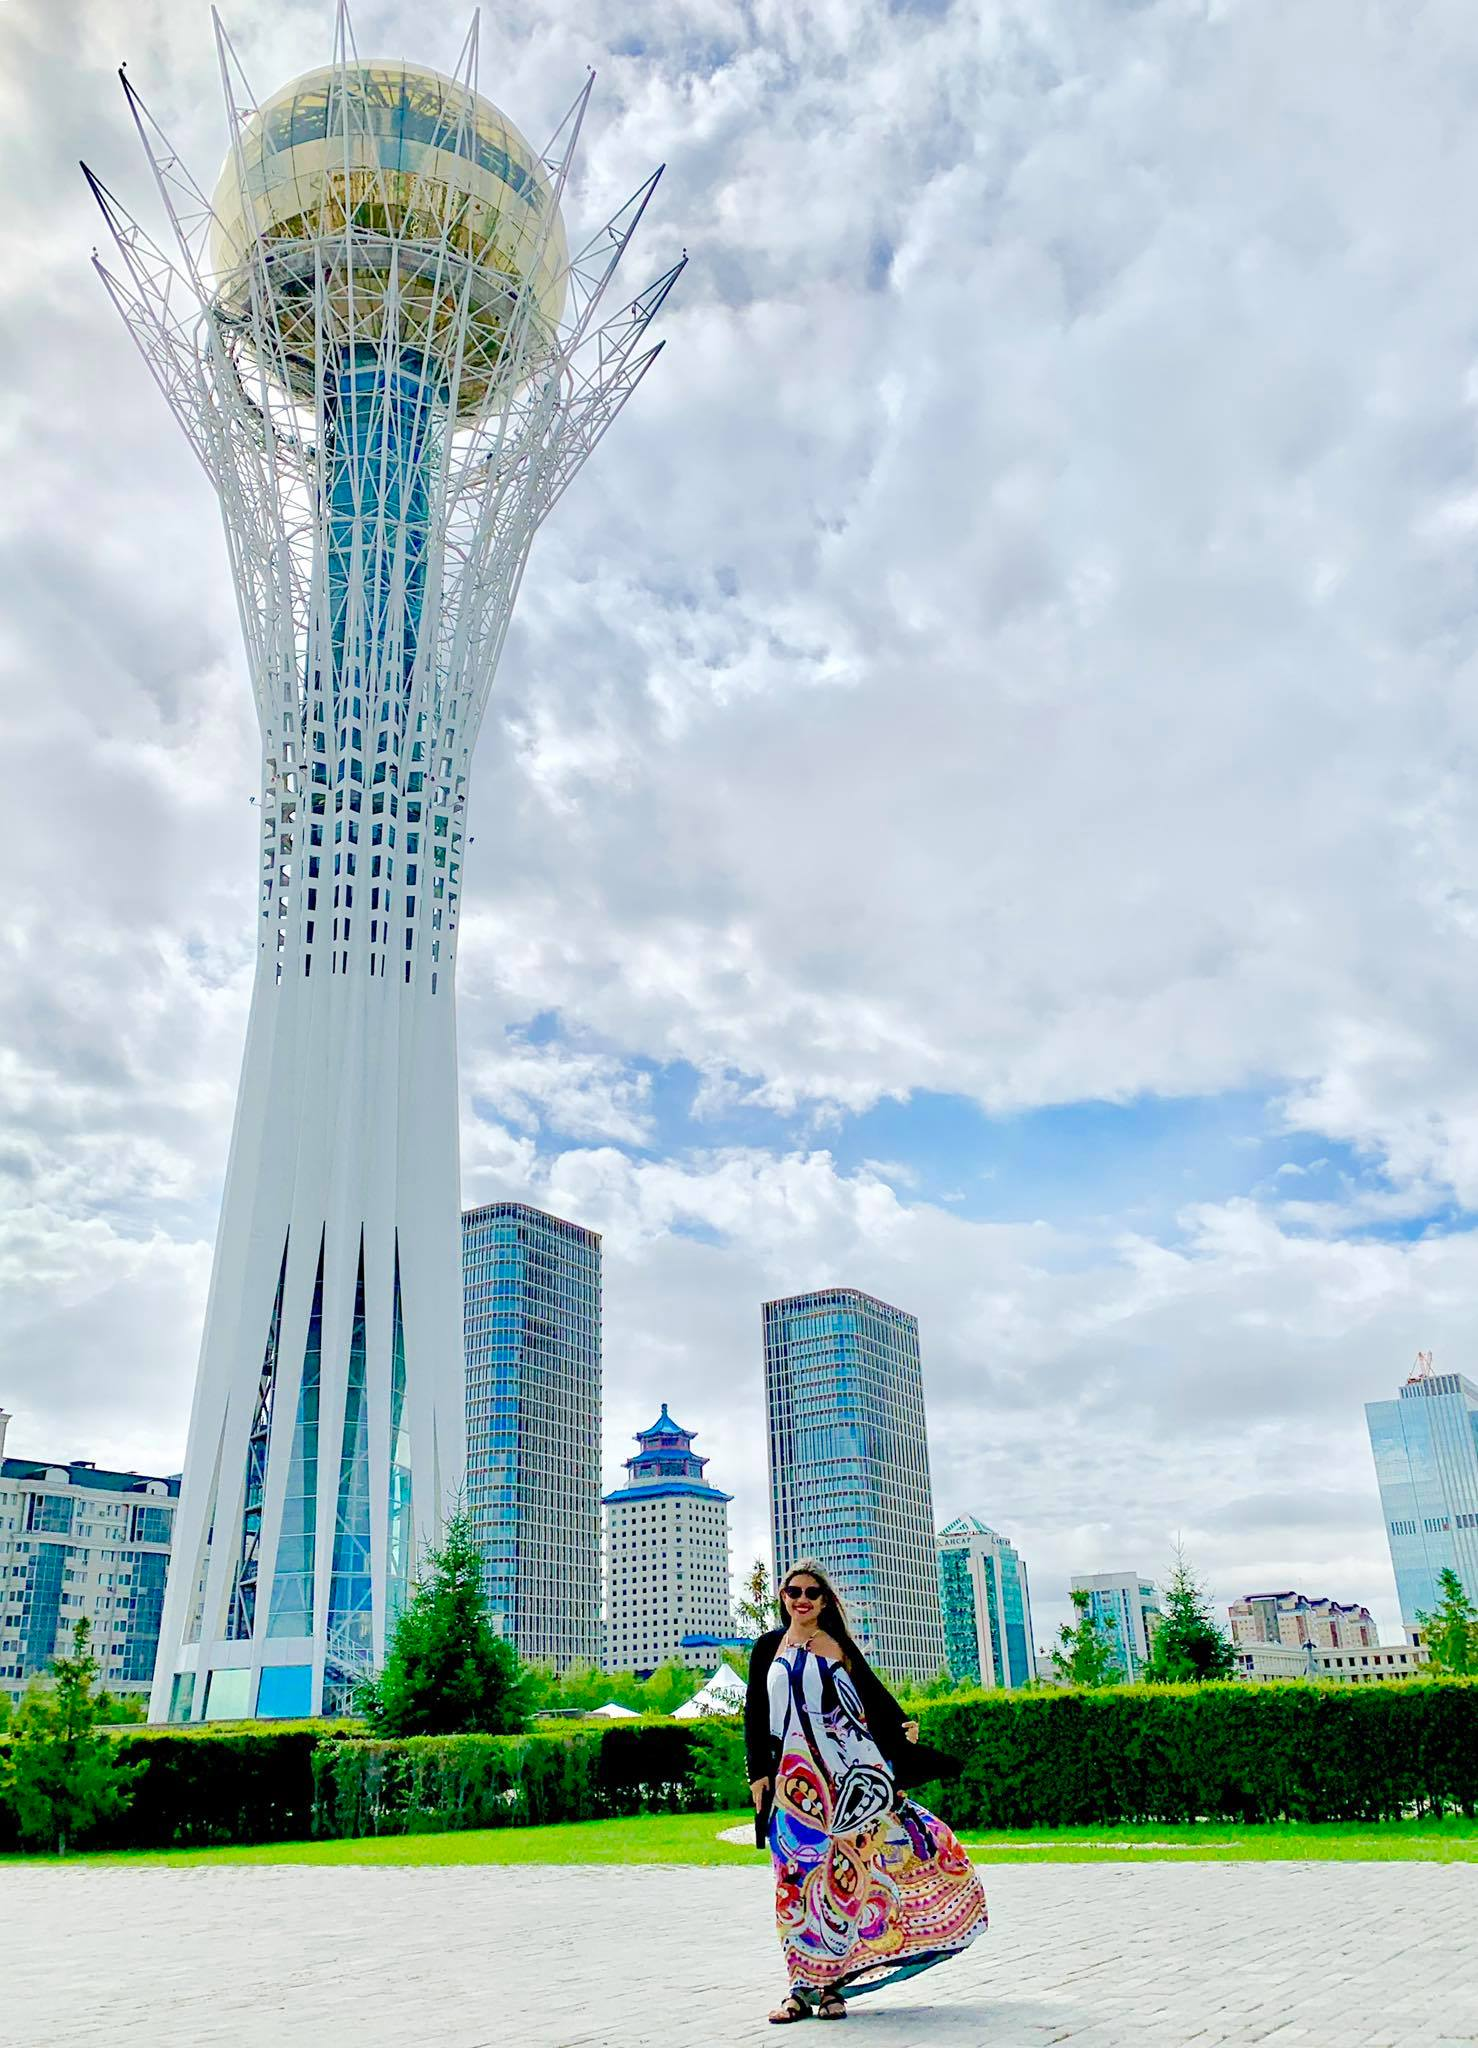 Kach Solo Travels in 2019 Nursultan  Astana - the City of the Future20.jpg